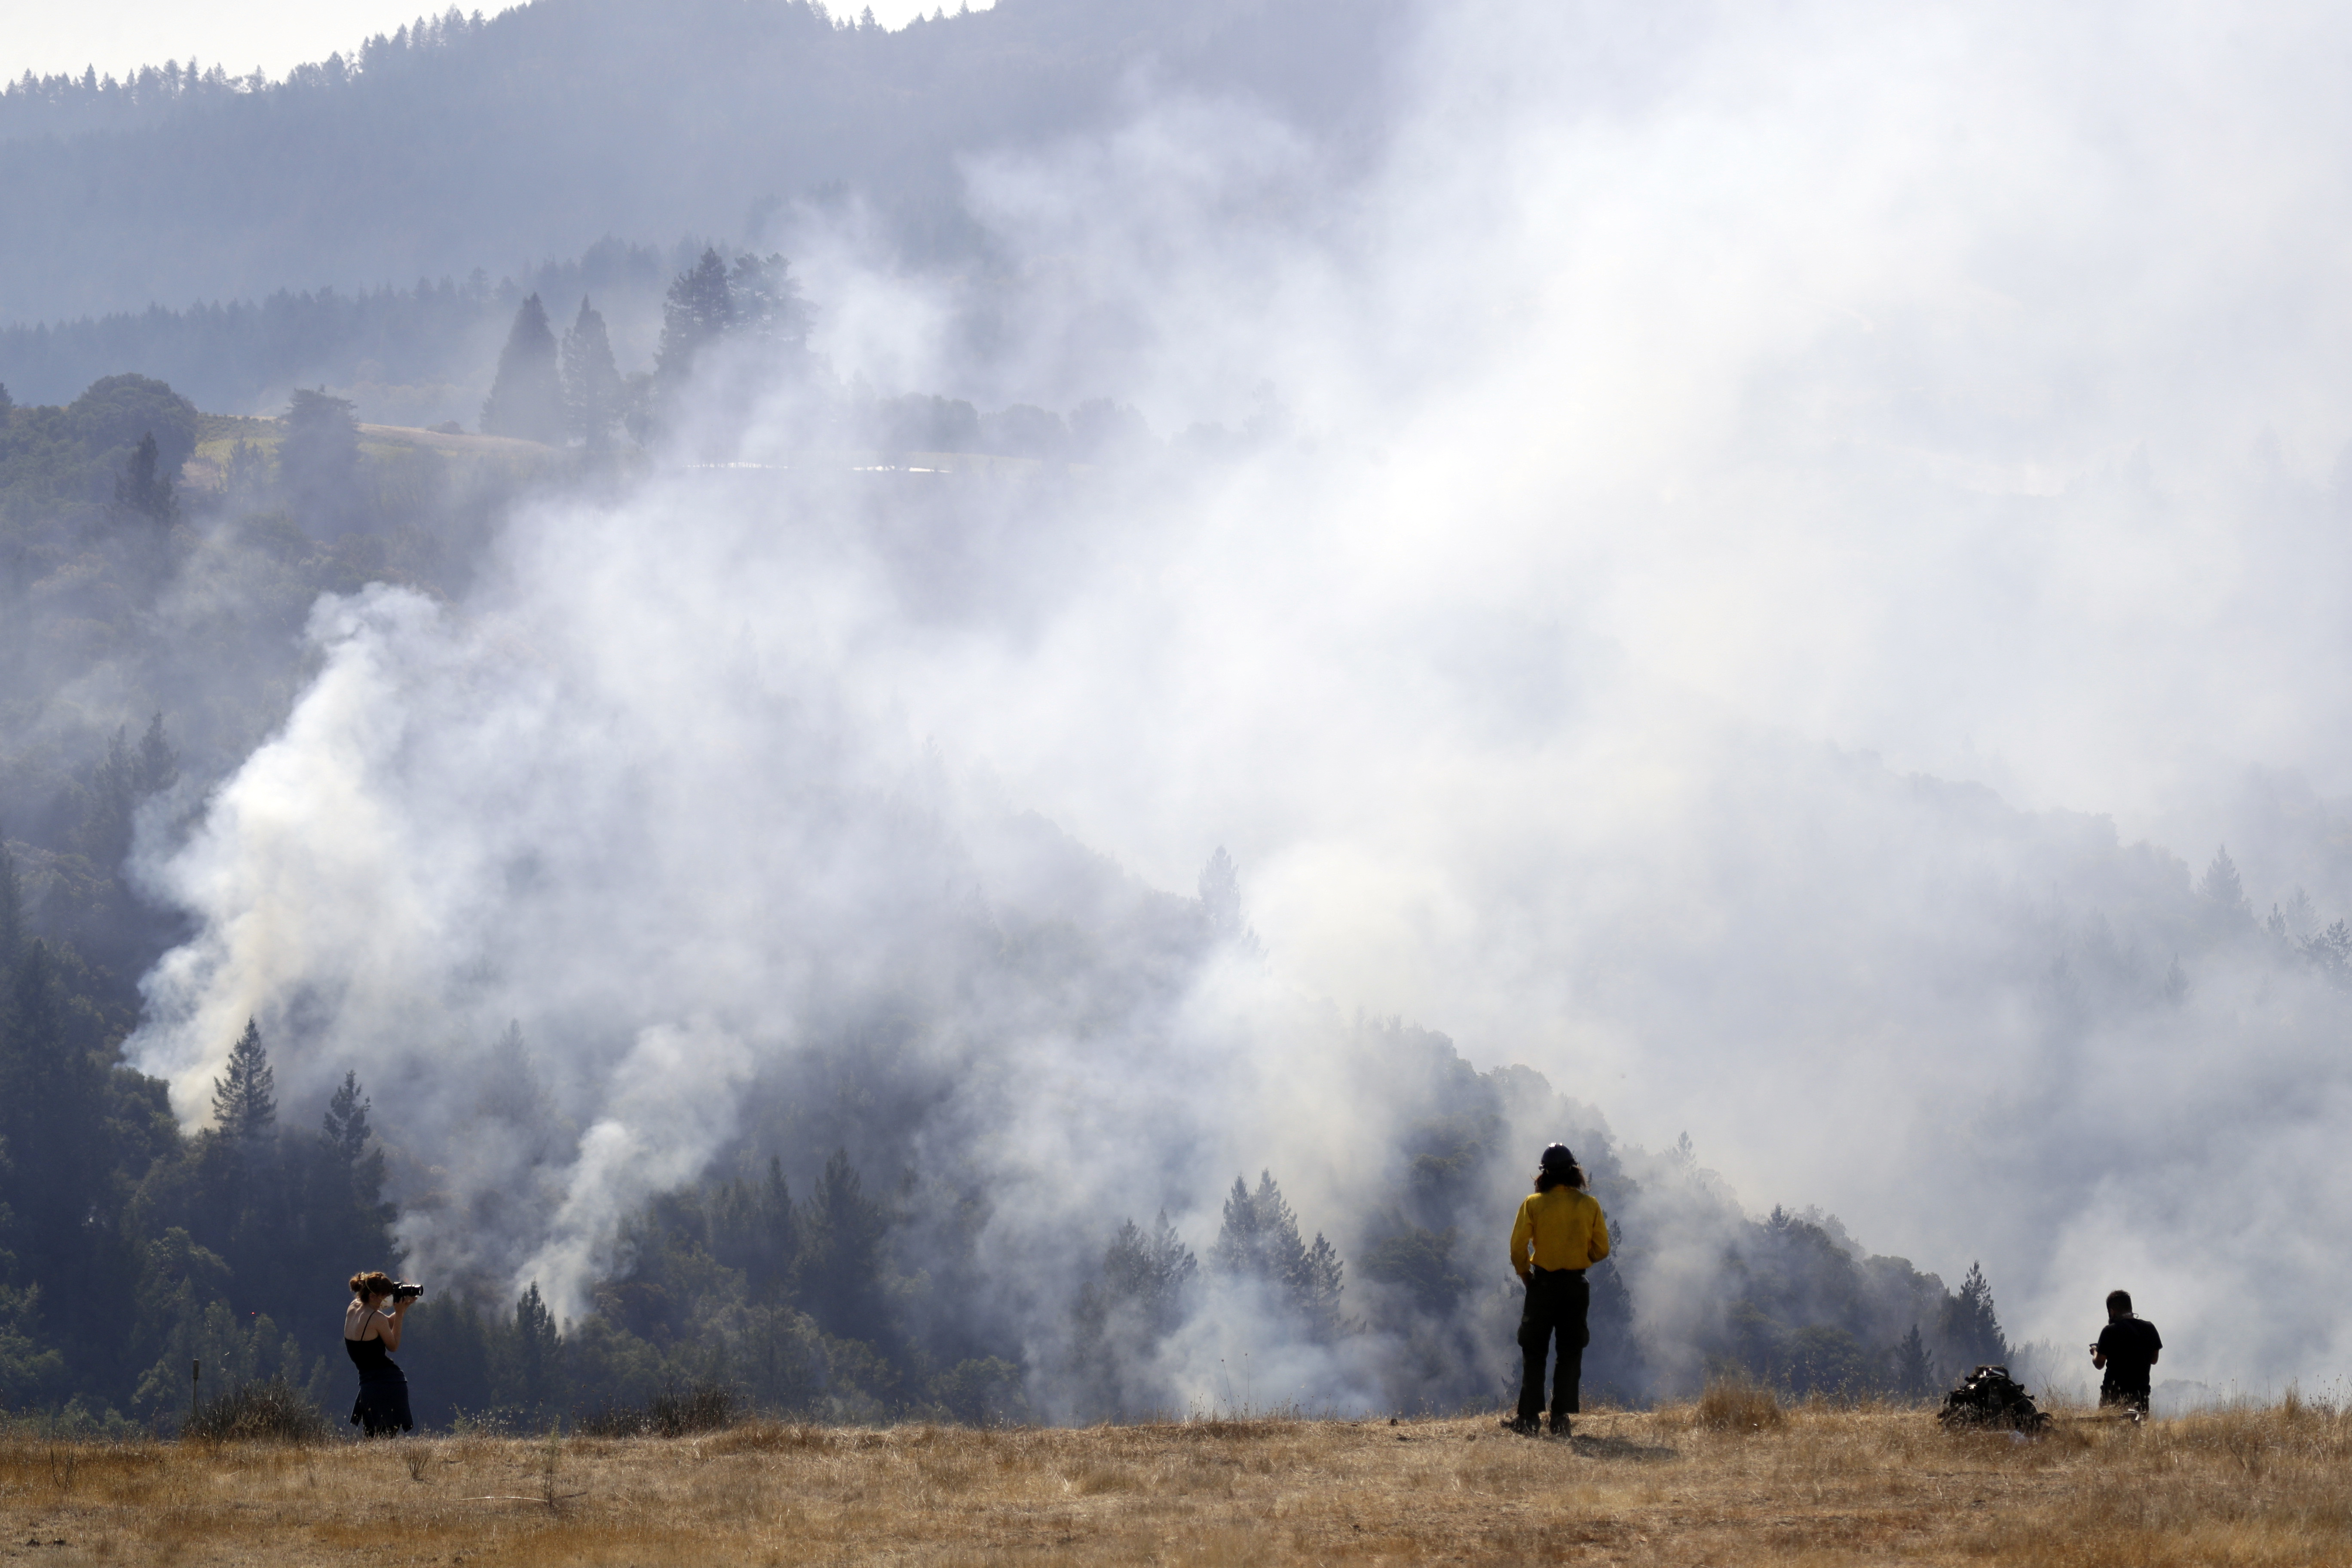 <div class='meta'><div class='origin-logo' data-origin='none'></div><span class='caption-text' data-credit='Marcio Jose Sanchez/AP Photo'>A firefighter, center, and two onlookers watch a smoldering wildfire from a hilltop, Sunday, Oct. 15, 2017, in Oakville, Calif.</span></div>